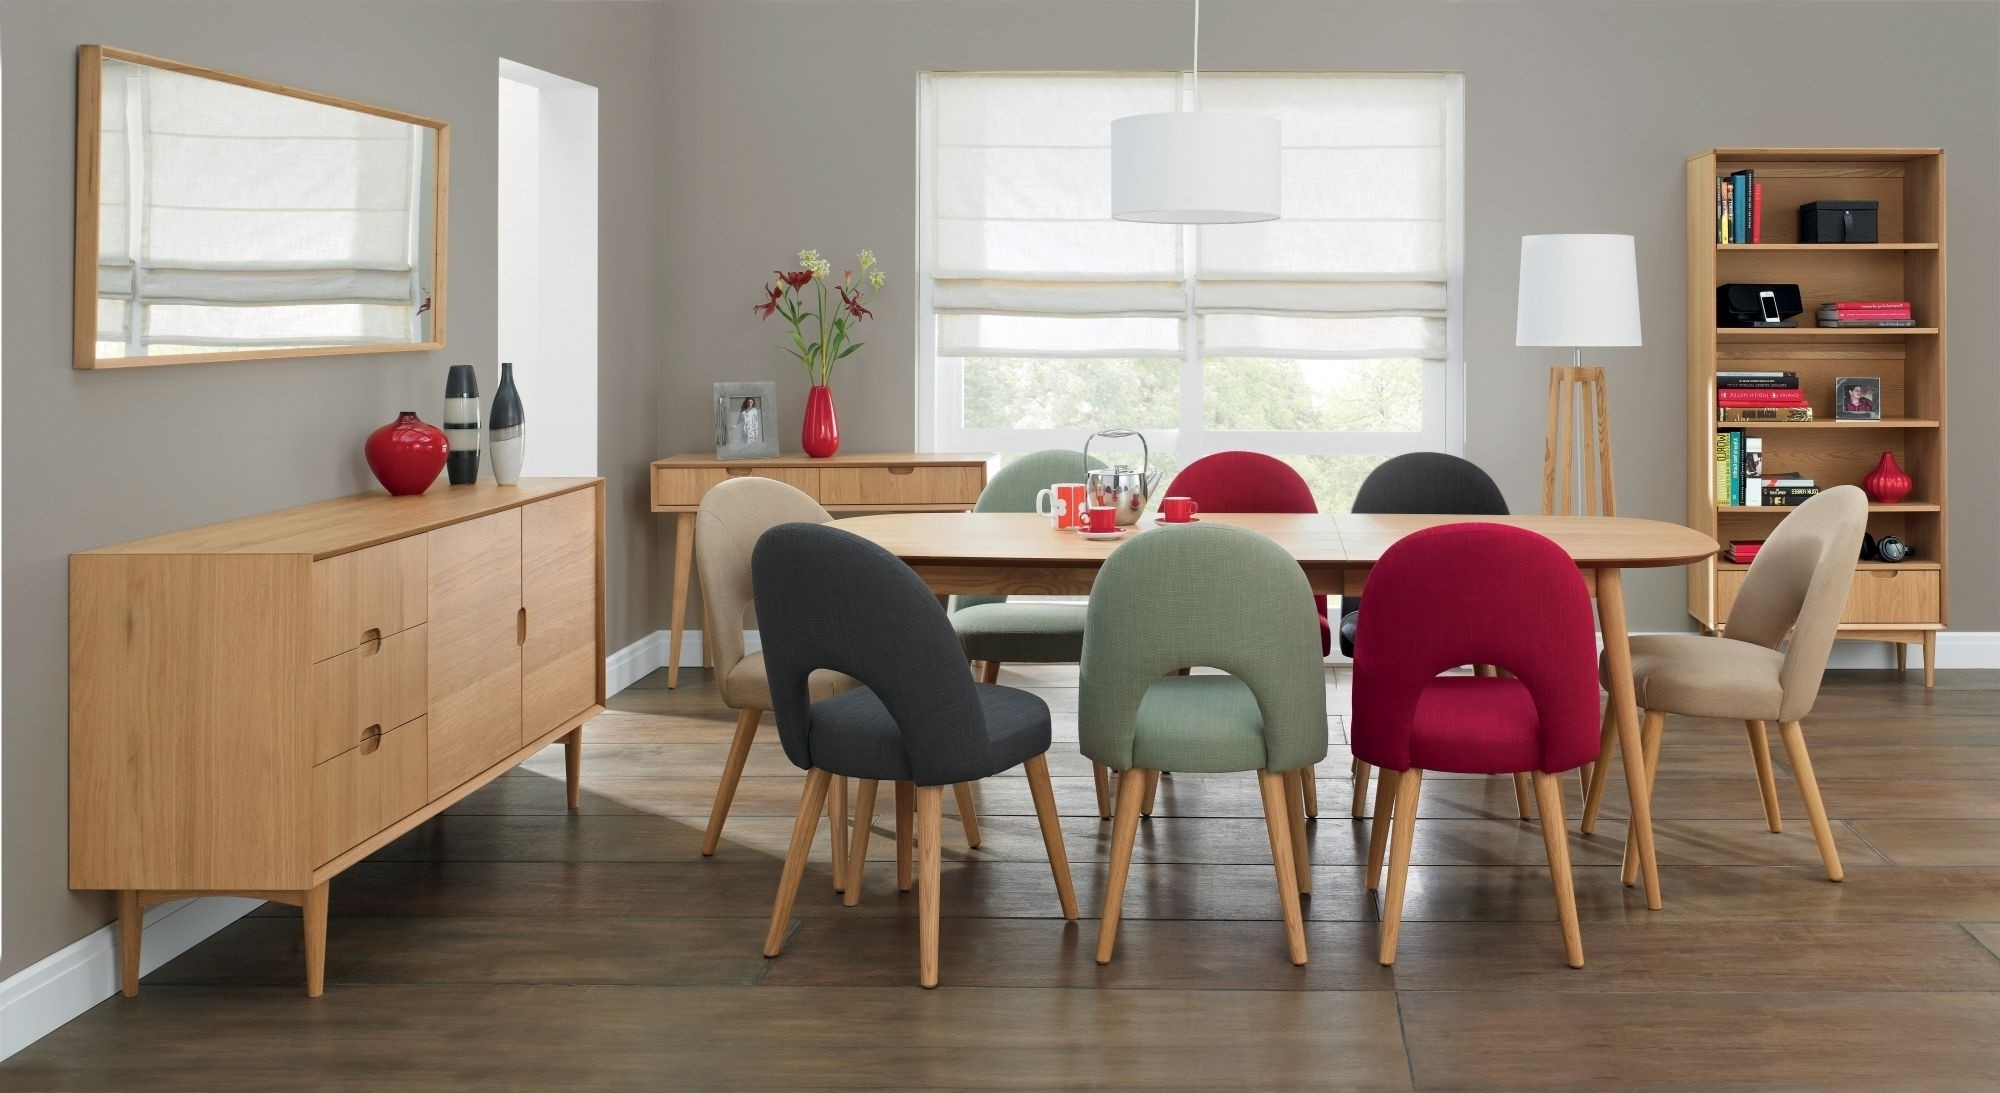 Oslo Oak 6 8 Seater Extending Dining Table – Style Our Home Inside 2017 8 Seater Oak Dining Tables (View 19 of 25)